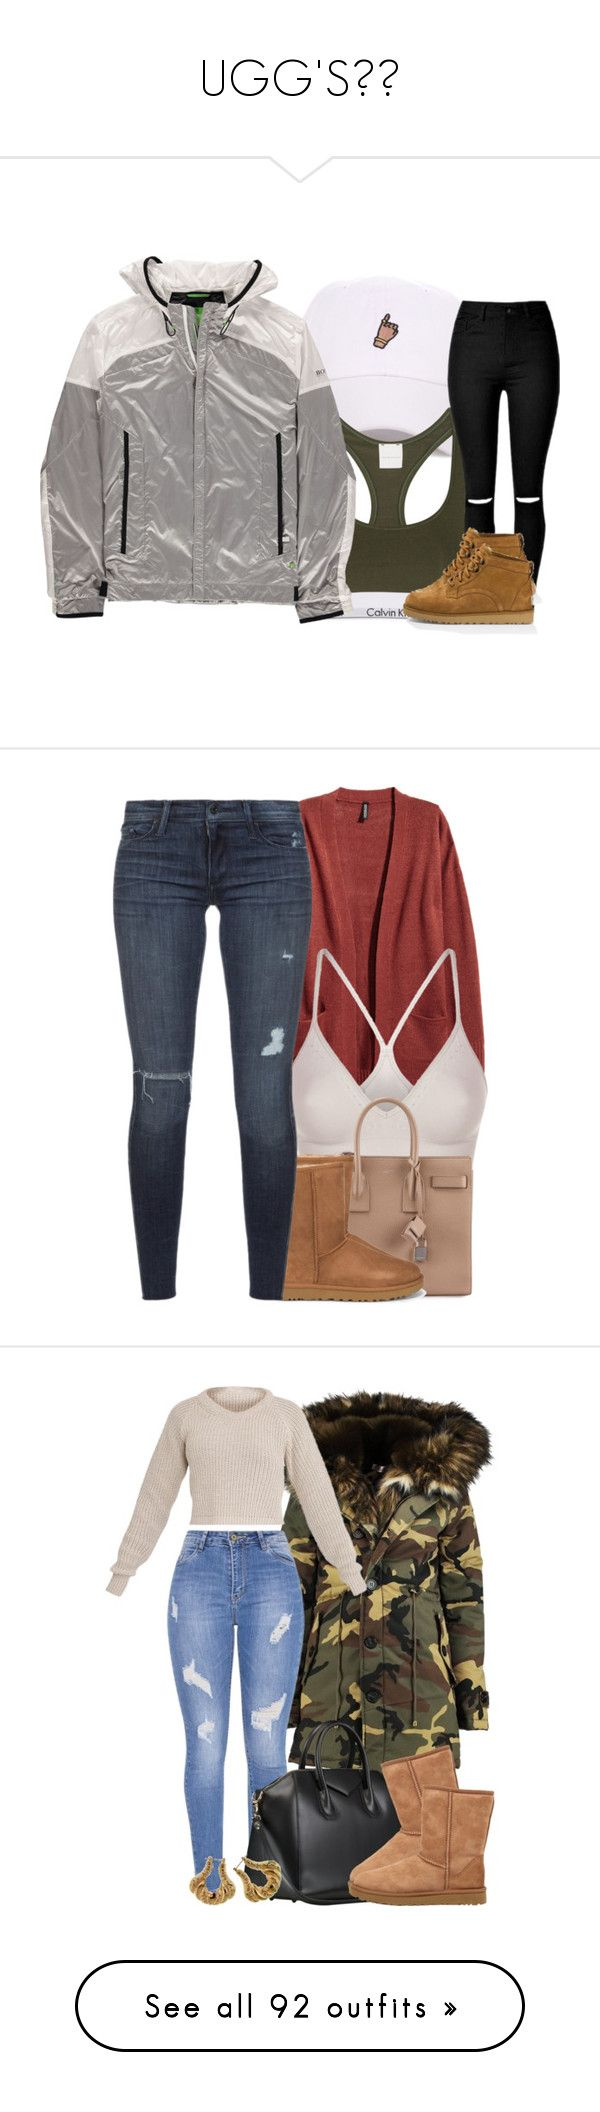 """""""UGG'S😛😎"""" by bvddess ❤ liked on Polyvore featuring Calvin Klein Underwear, BOSS Green, UGG Australia, SPANX, Yves Saint Laurent, UGG, Black Orchid, Boohoo, Topshop and MCM"""